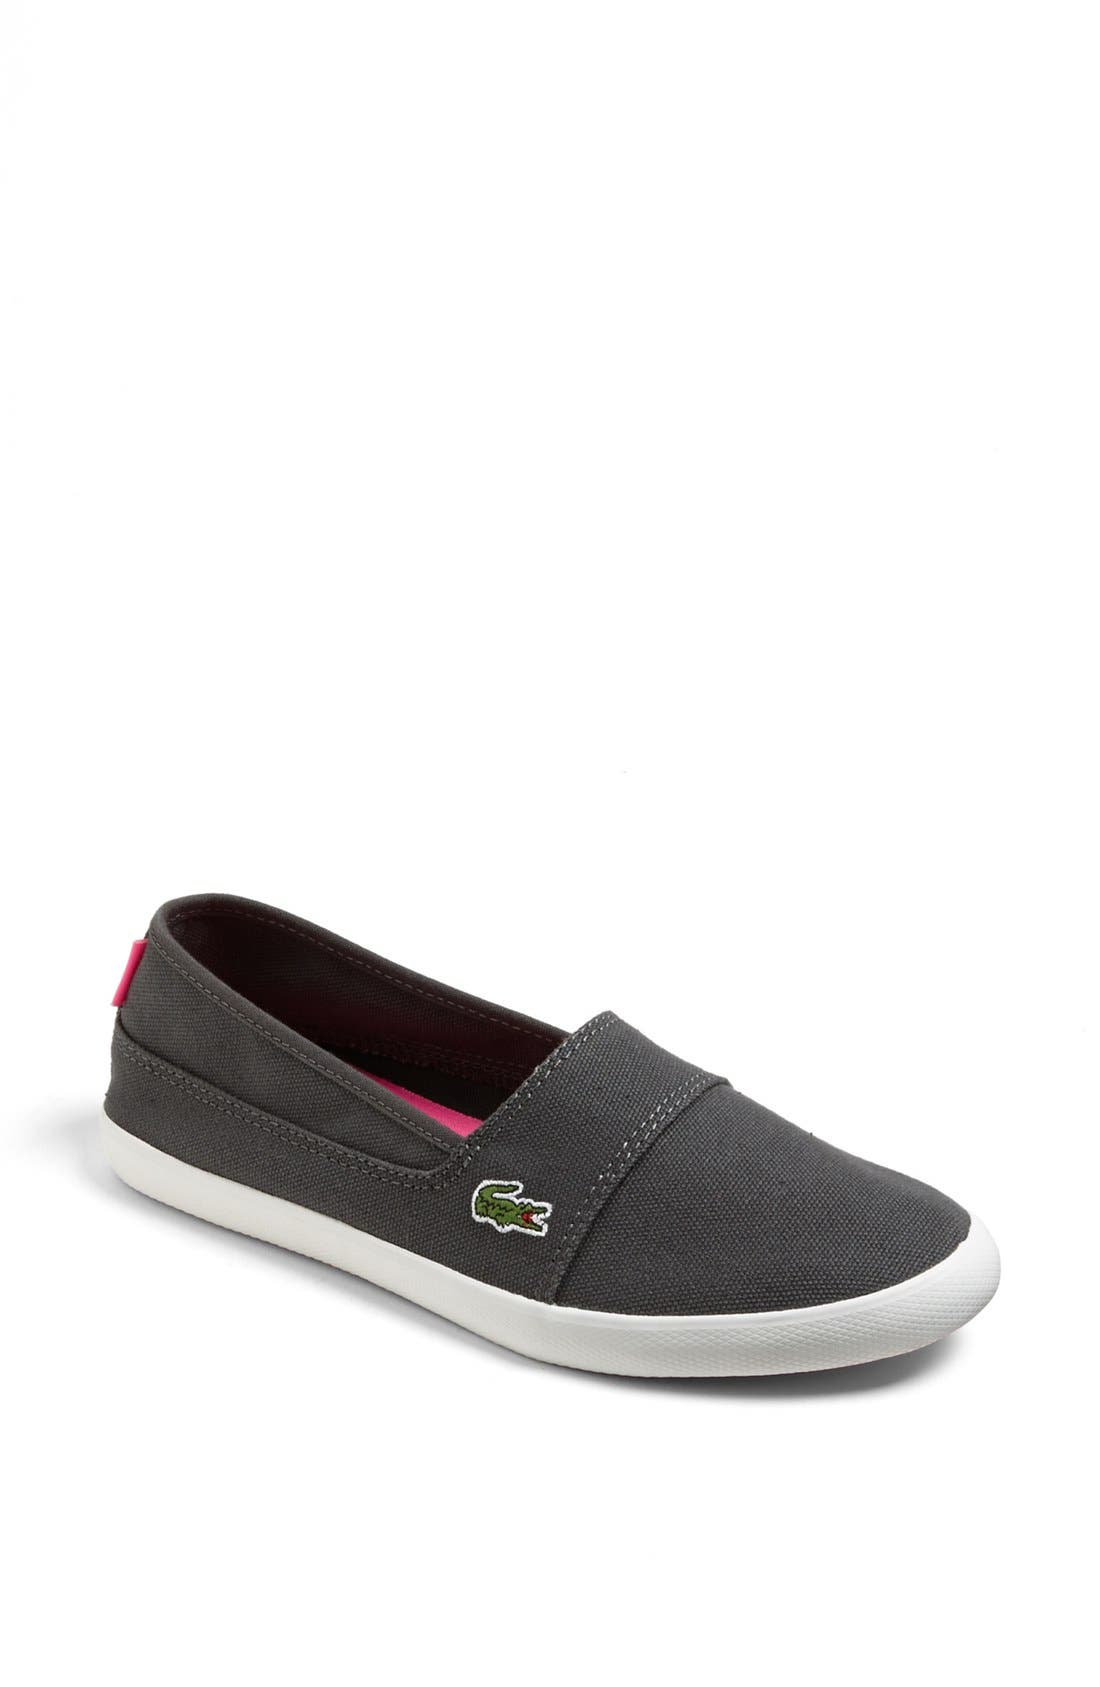 Main Image - Lacoste 'Maurice' Sneaker (Women) (Online Only)